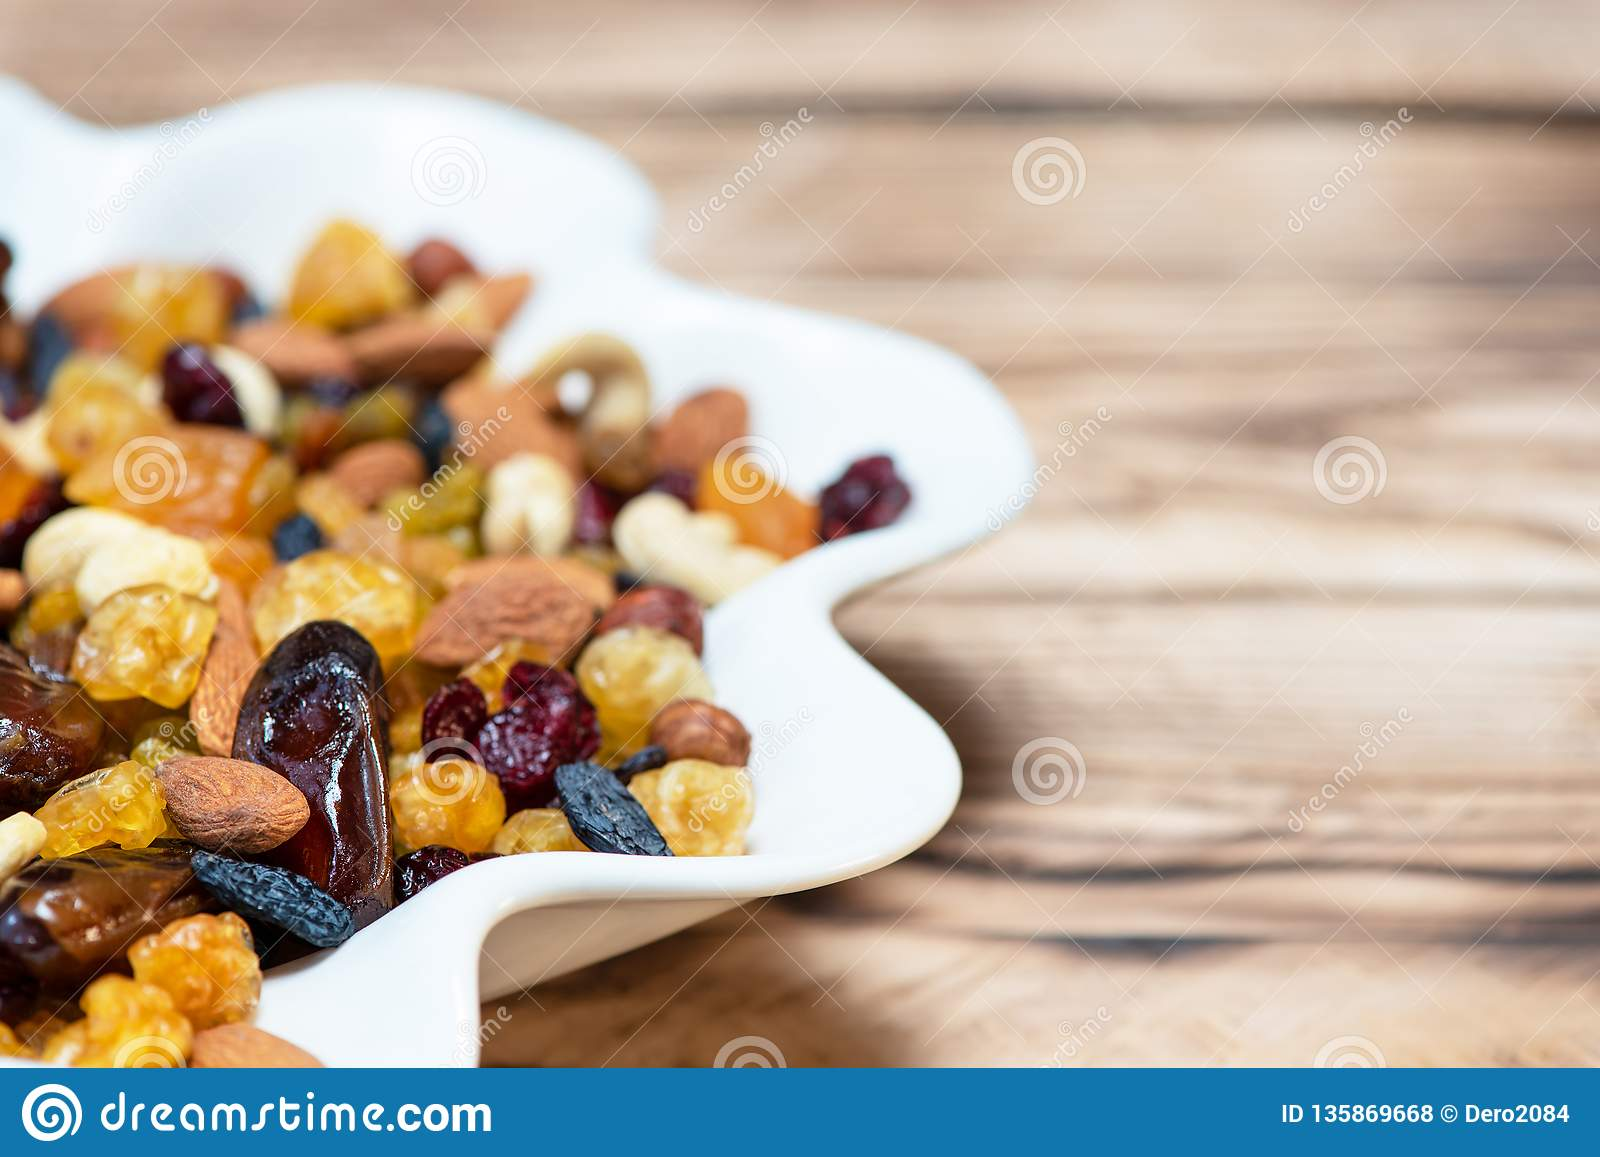 Mix of nuts and berries. Dried fruits in white plate on wooden table, copy space for text. Healthy food and vitamins